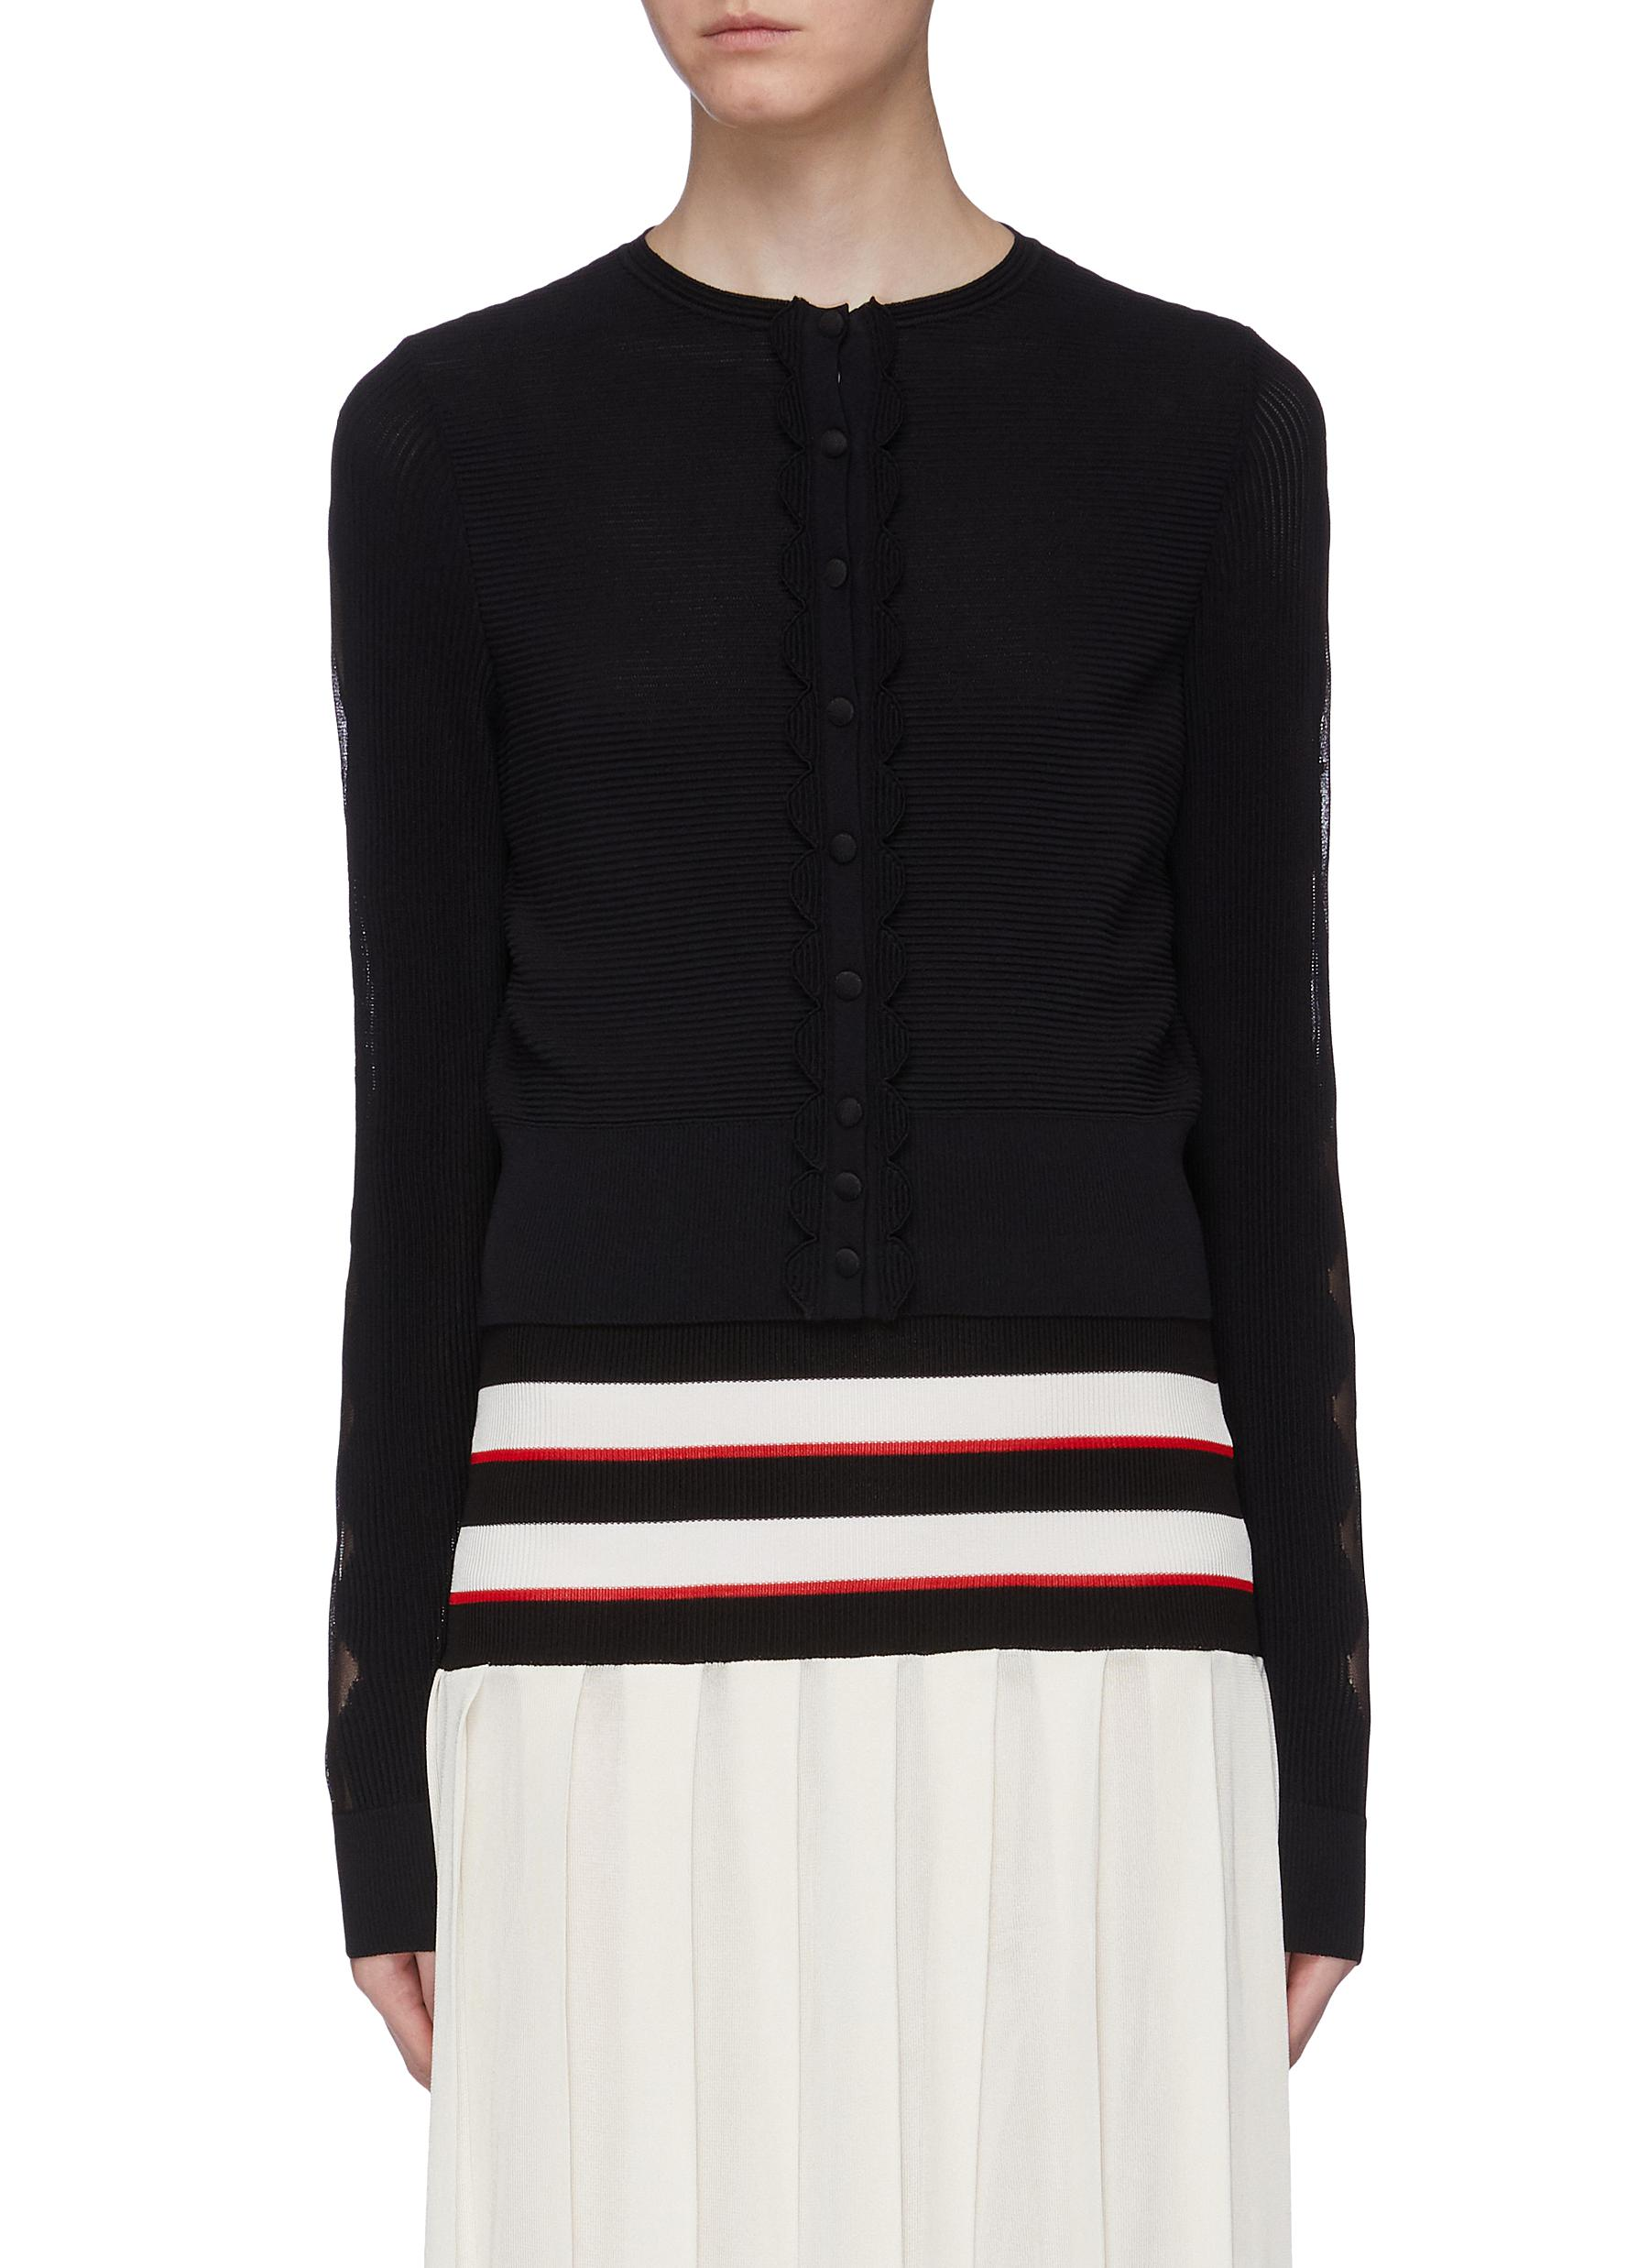 Scalloped dot jacquard trim sleeve rib knit cardigan by Alexander Mcqueen